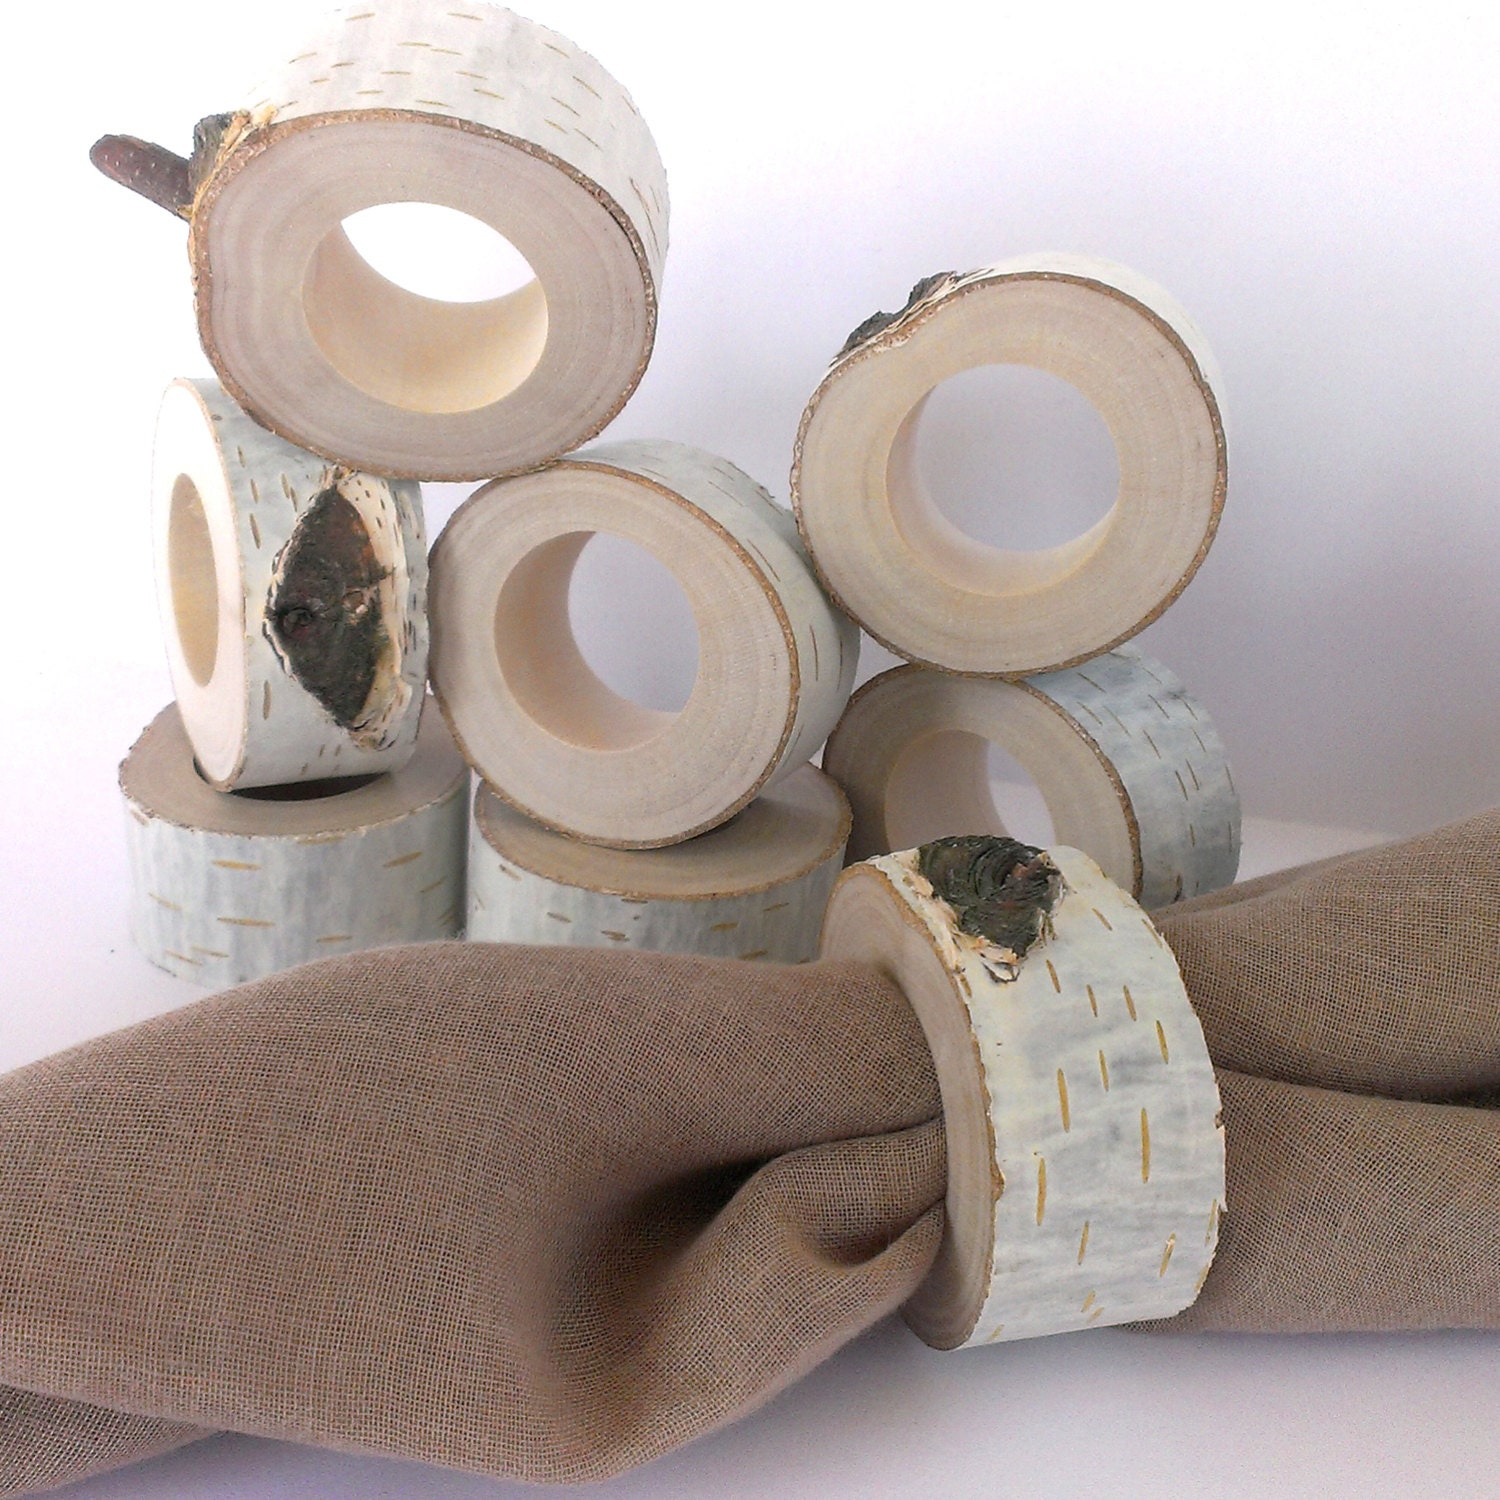 rustic napkin rings 8 pcs holders wedding napkin holder. Black Bedroom Furniture Sets. Home Design Ideas